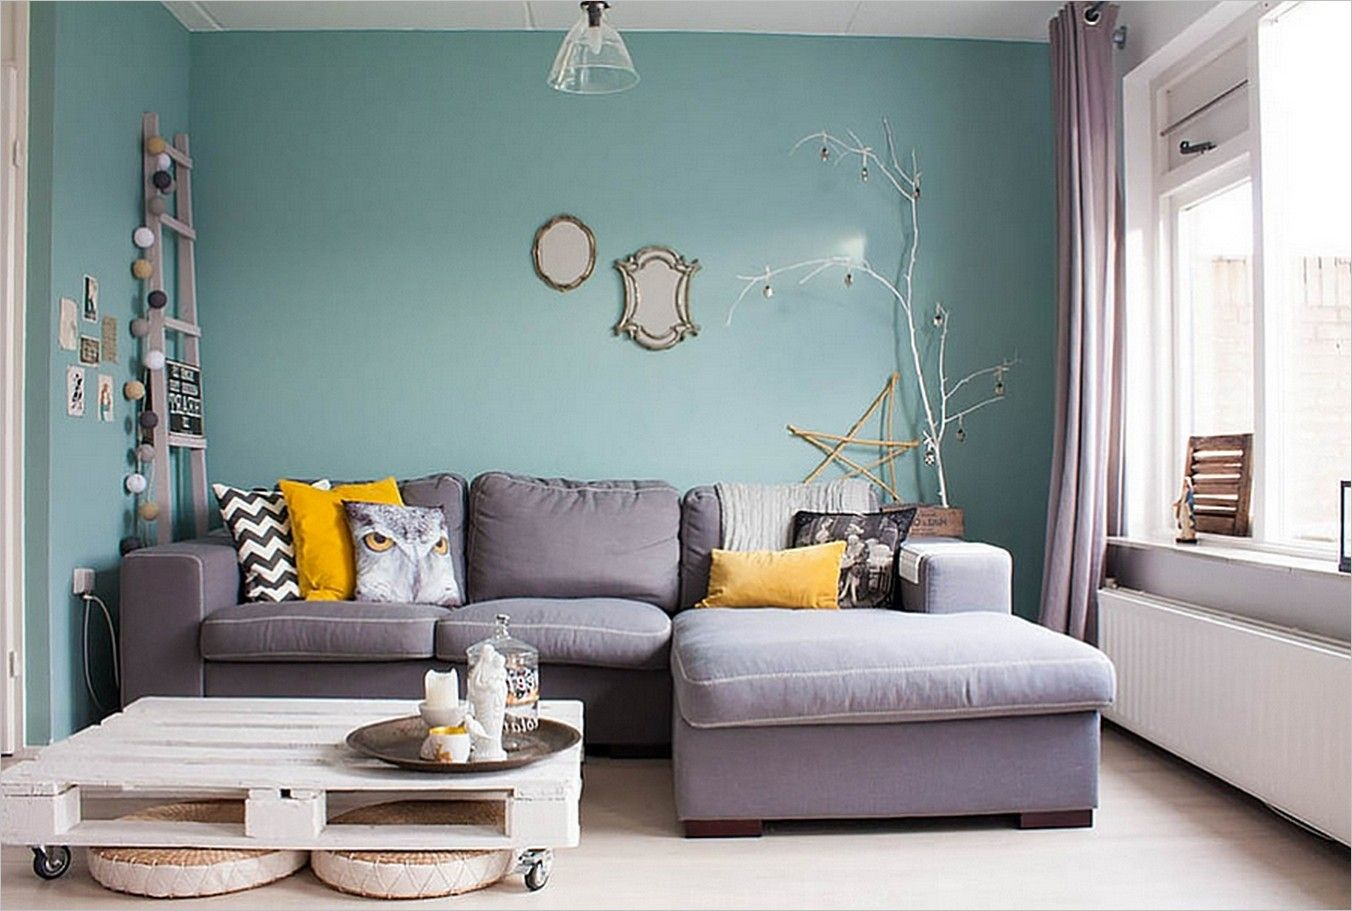 Living Room Colors Blue Grey grey couch wall color ideas wall in living room with grey couch